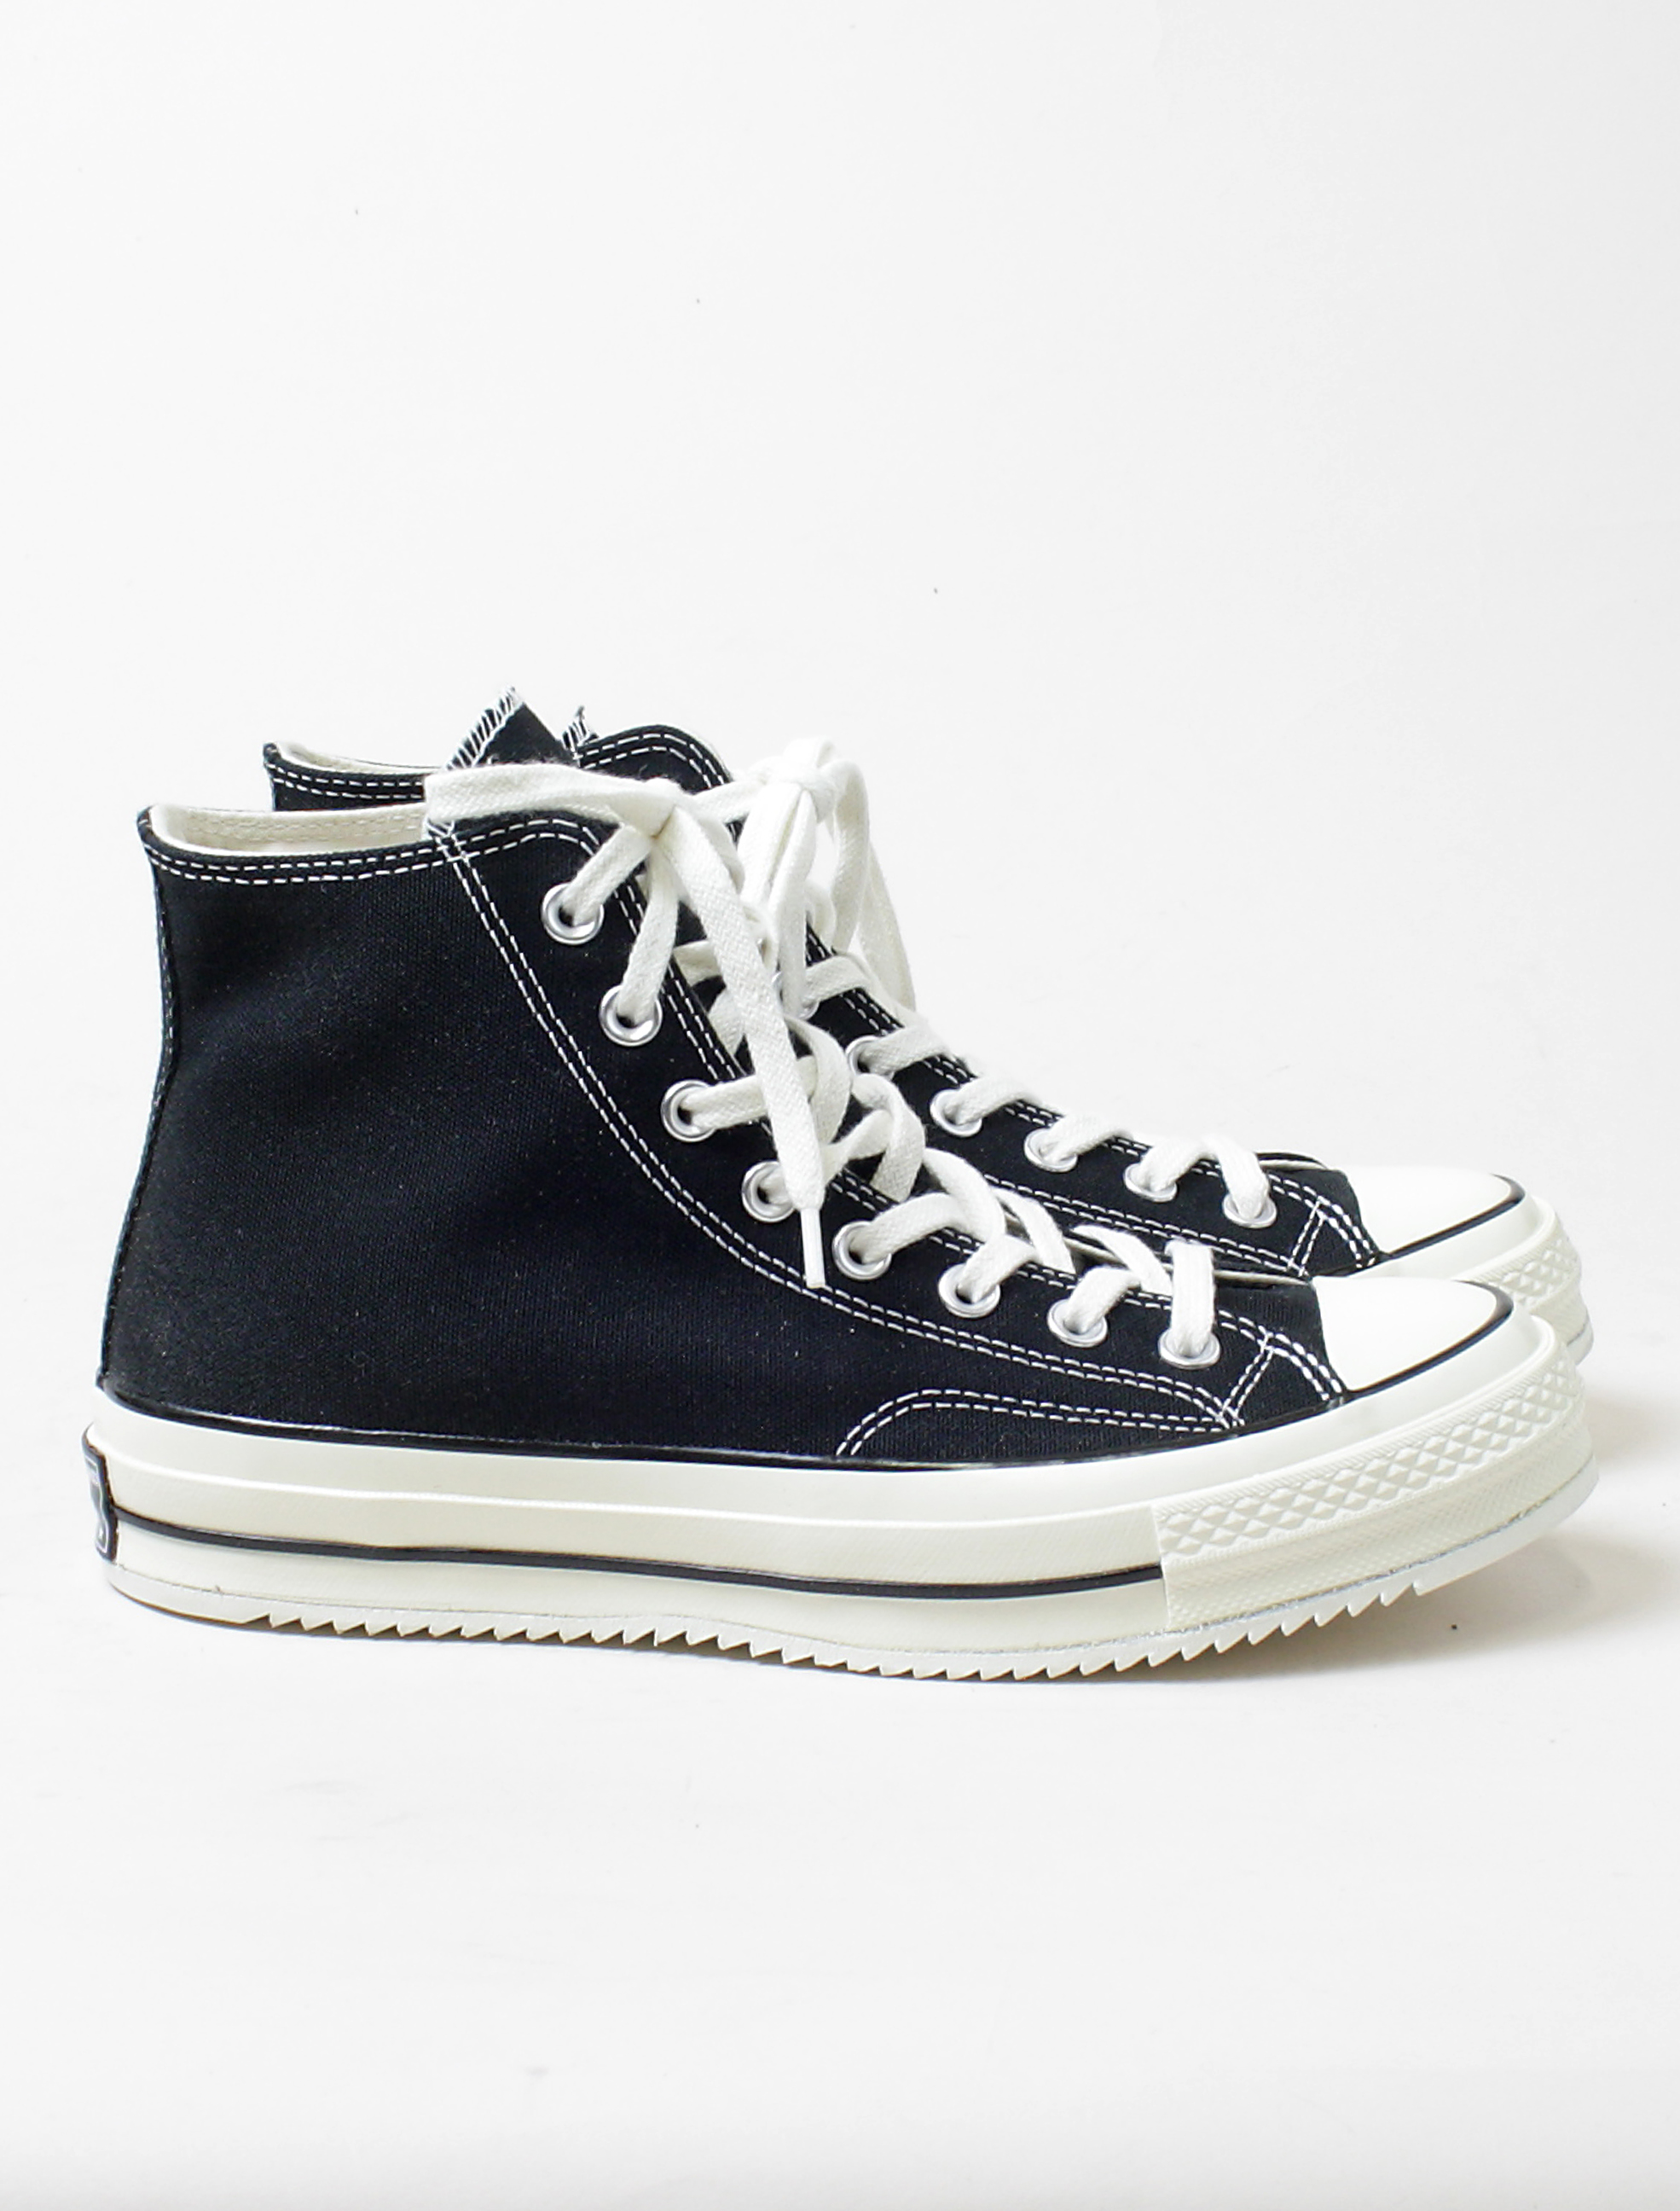 2c18bb9dcf Riparazione - Men s Custom converse high top